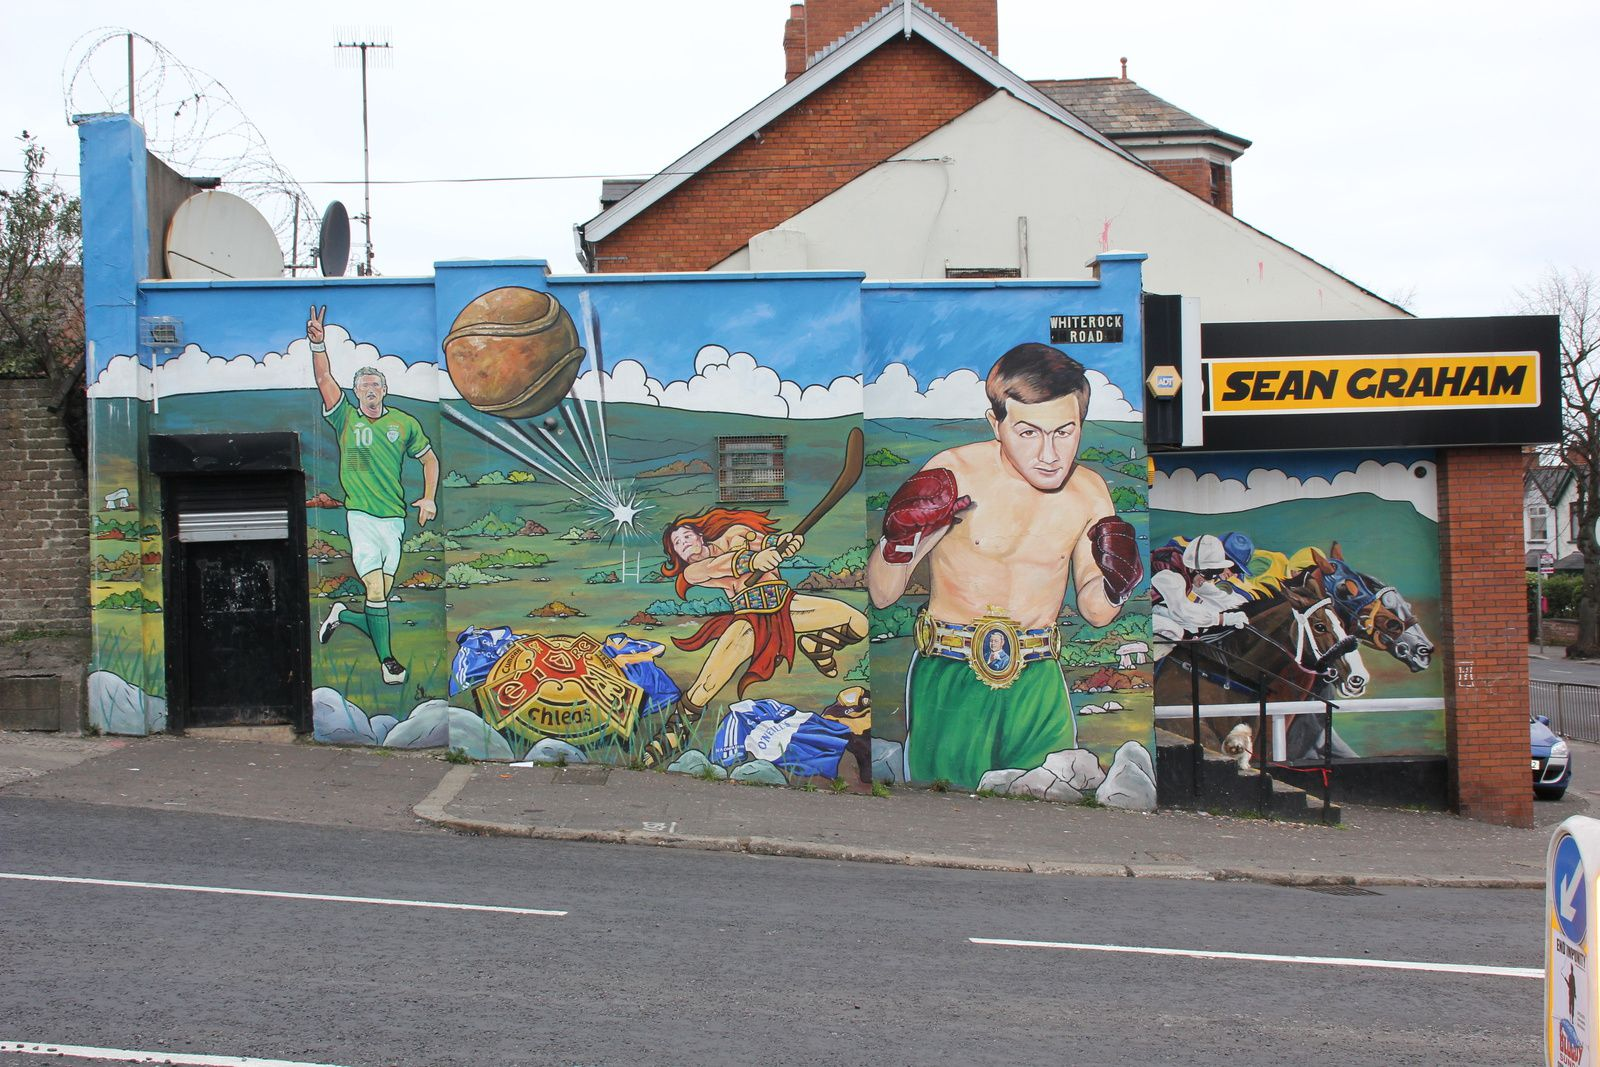 475) Whiterock Road, West Belfast